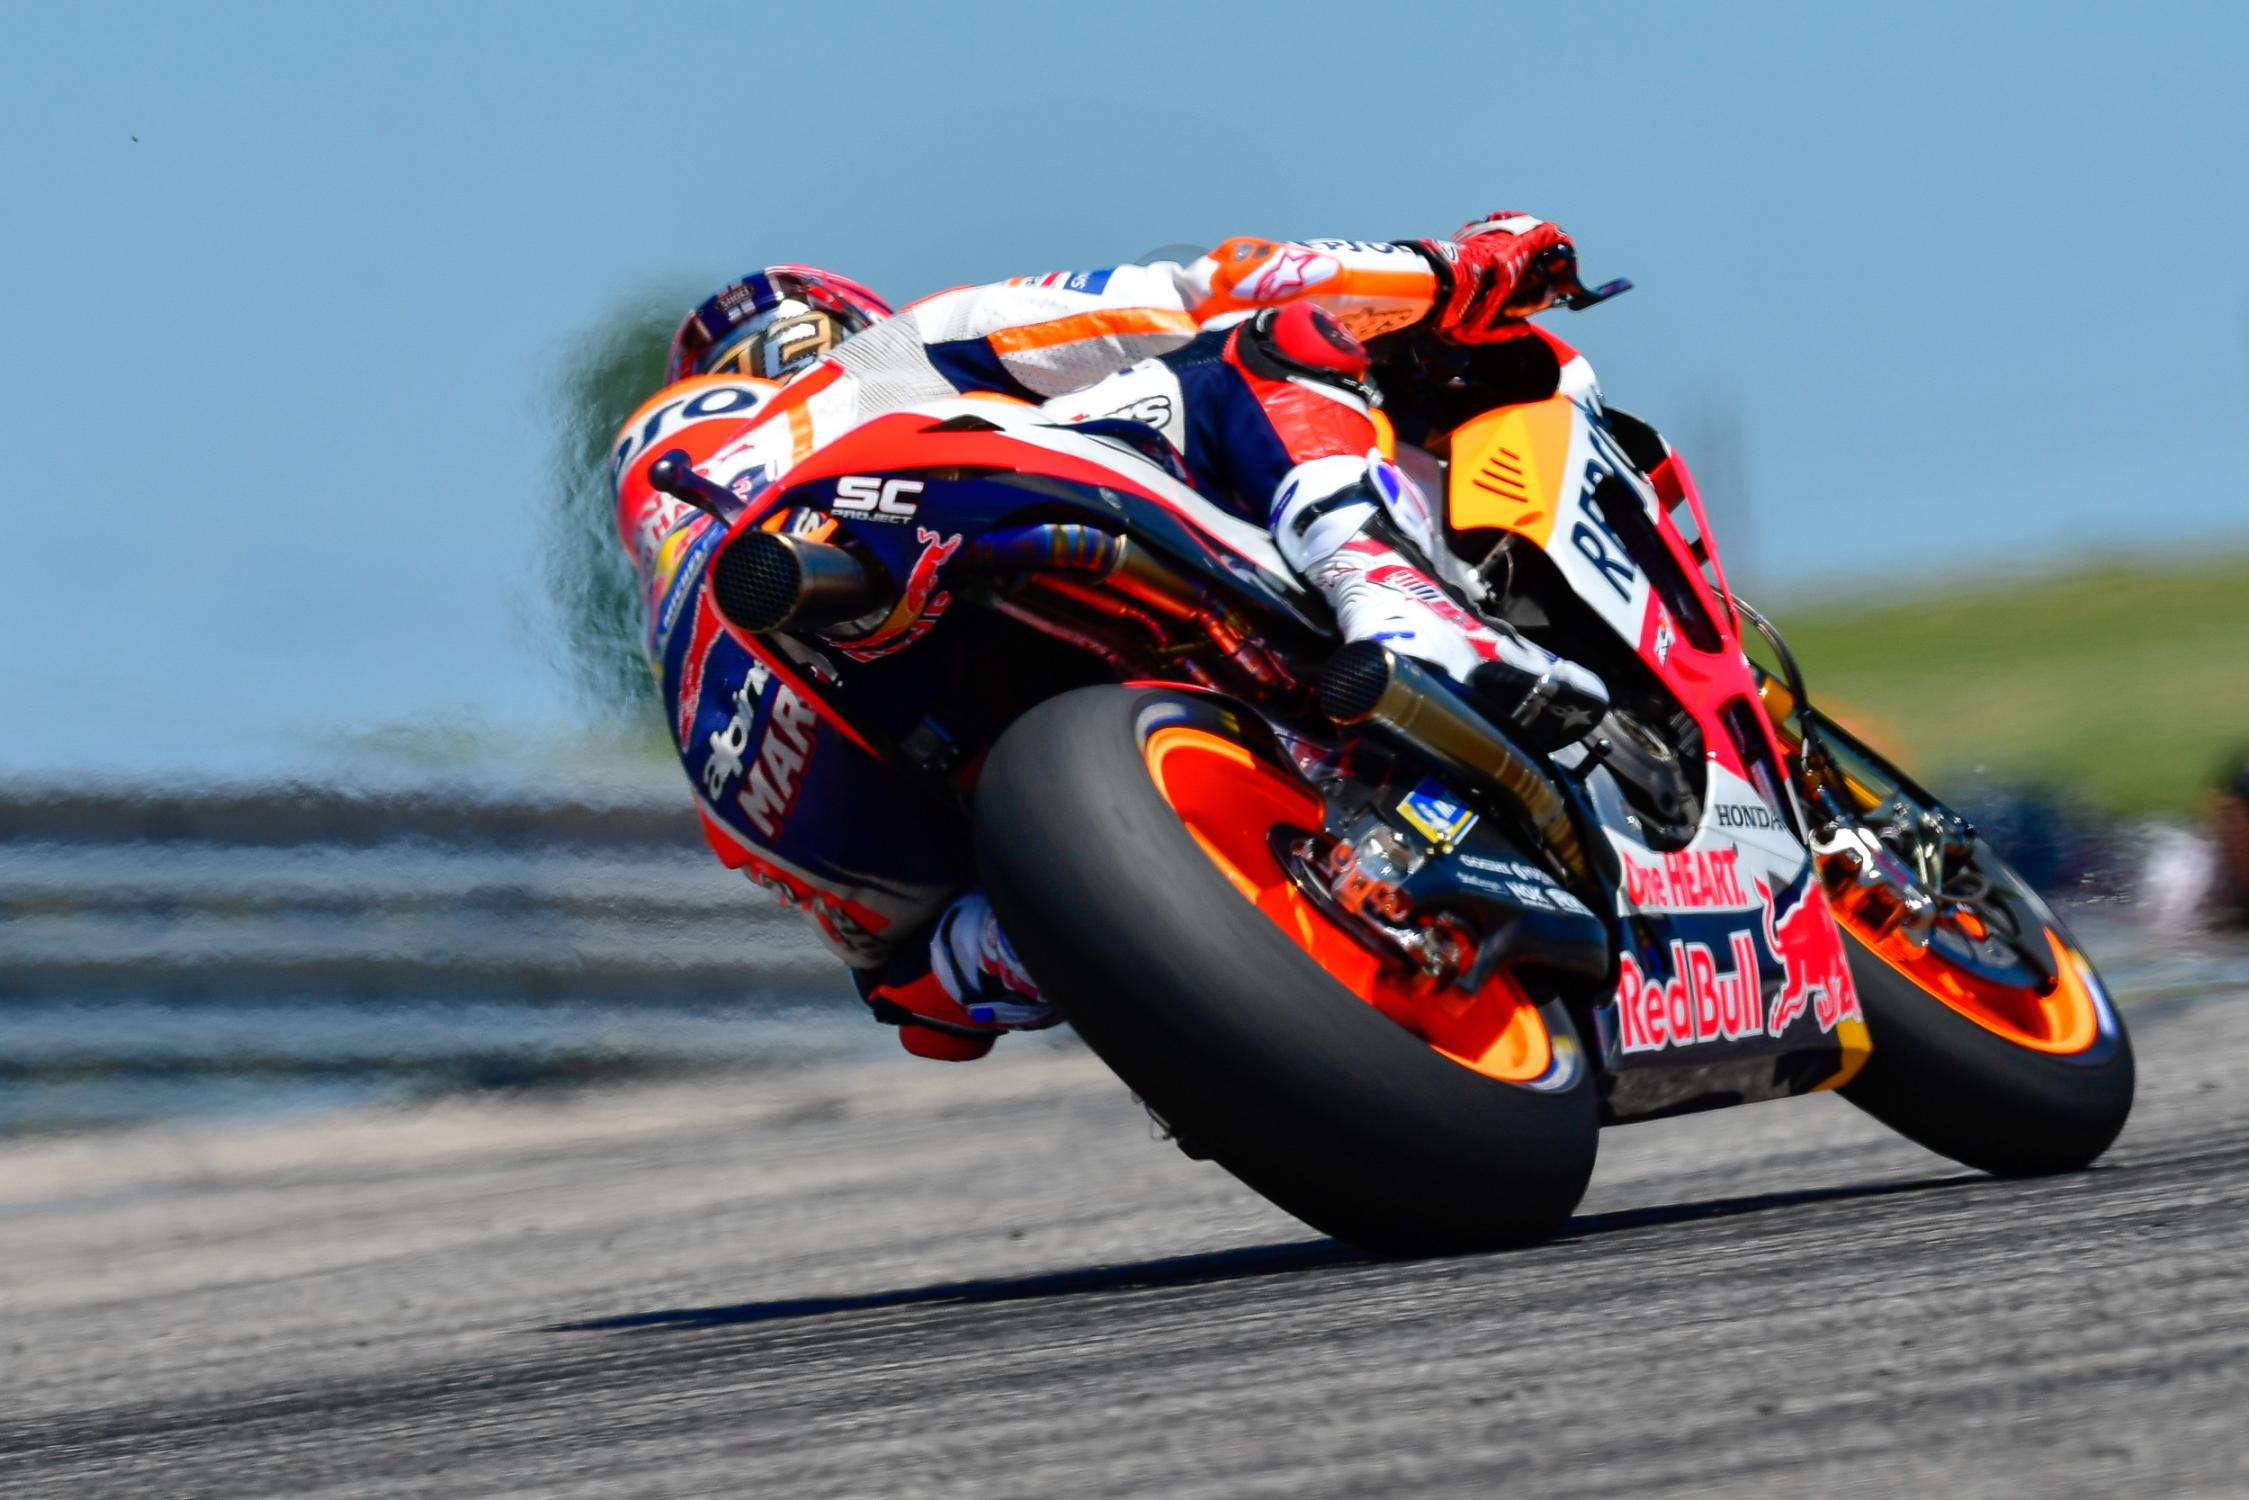 [GP] Austin 93-marc-marquez-esp_ds52524.gallery_full_top_fullscreen